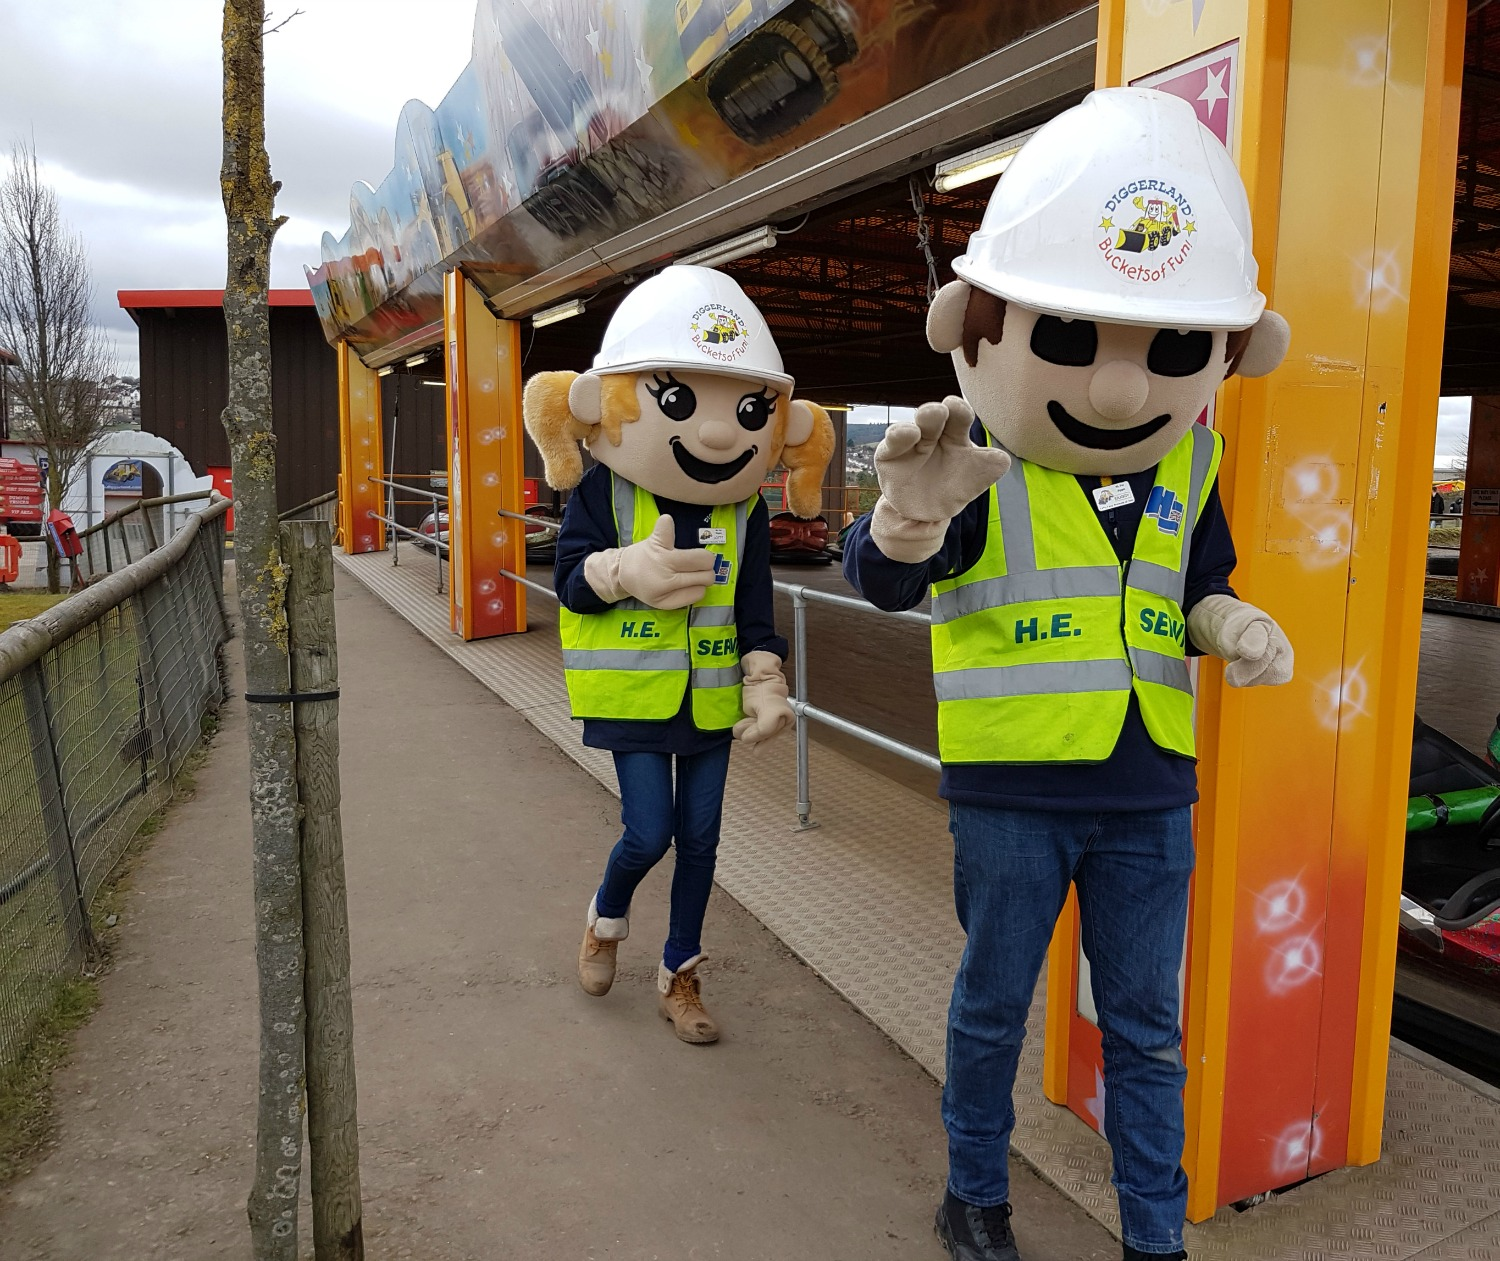 The two park characters wandering around Diggerland Kent on our family day out